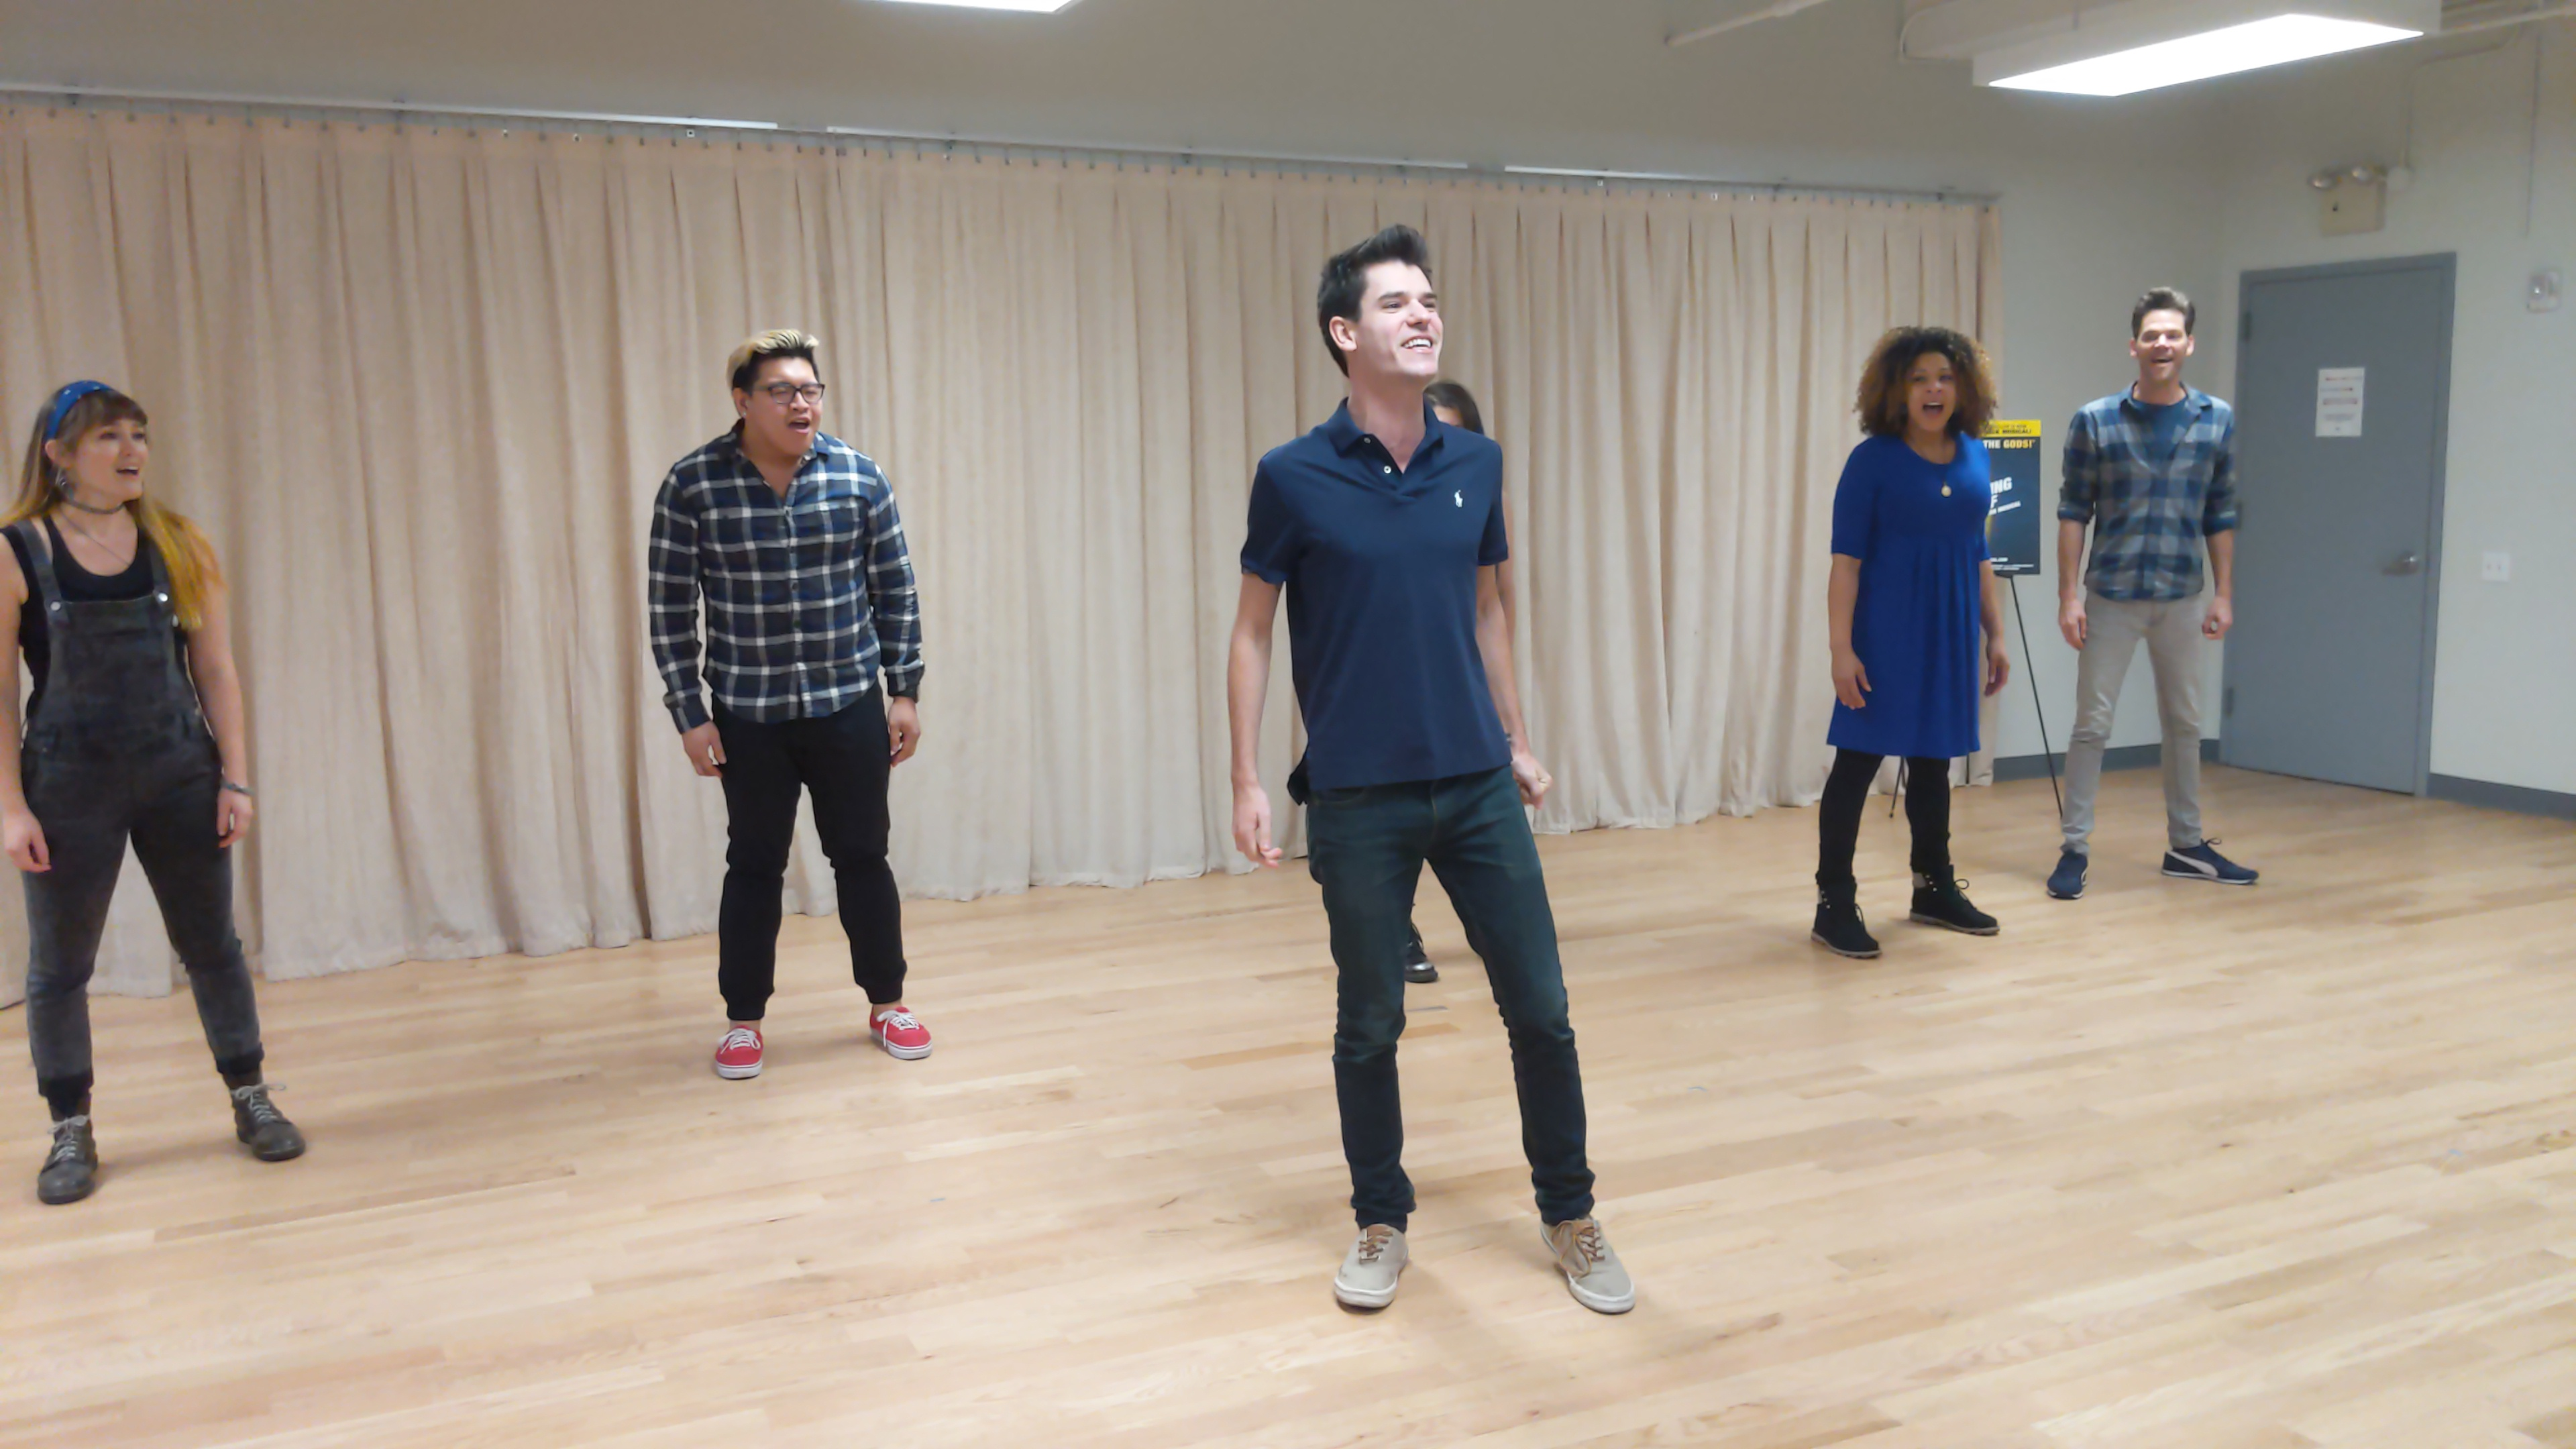 """From left to right, Kristin Stokes (Annabeth), Jorrel Javier (Grover), Chris McCarrell (Percy), Jalynn Steele (Camp Half Blood camper), and Ryan Knowles (Chiron) perform """"Bring on the Monsters."""""""